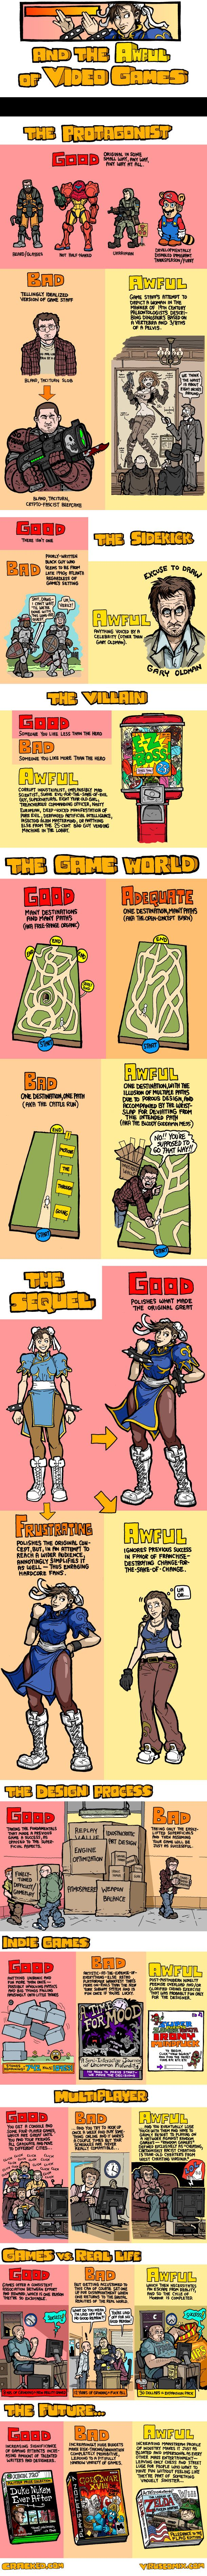 The Good, The Bad, and the Awful of Video Games [COMIC]   Cracked.com